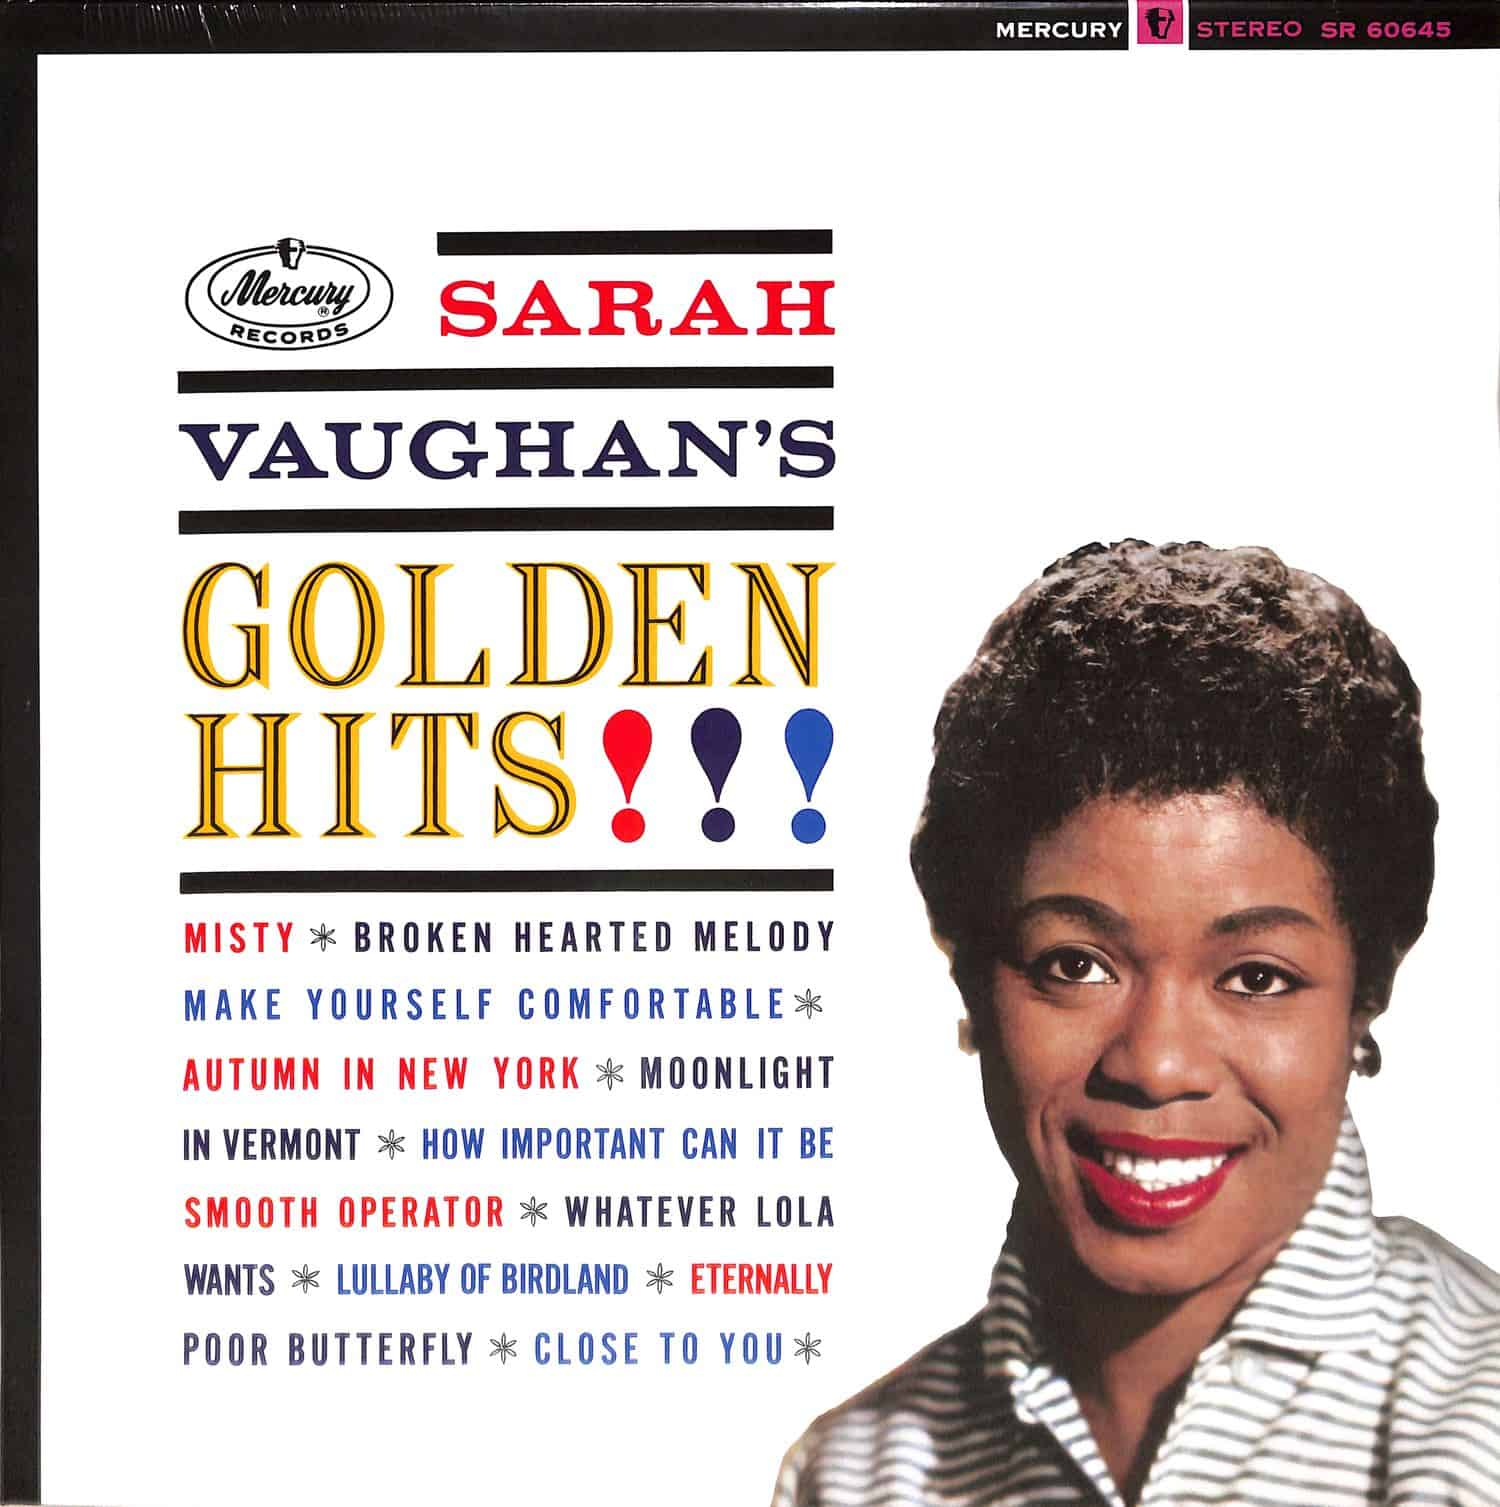 Sarah Vaughan - GOLDEN HITS